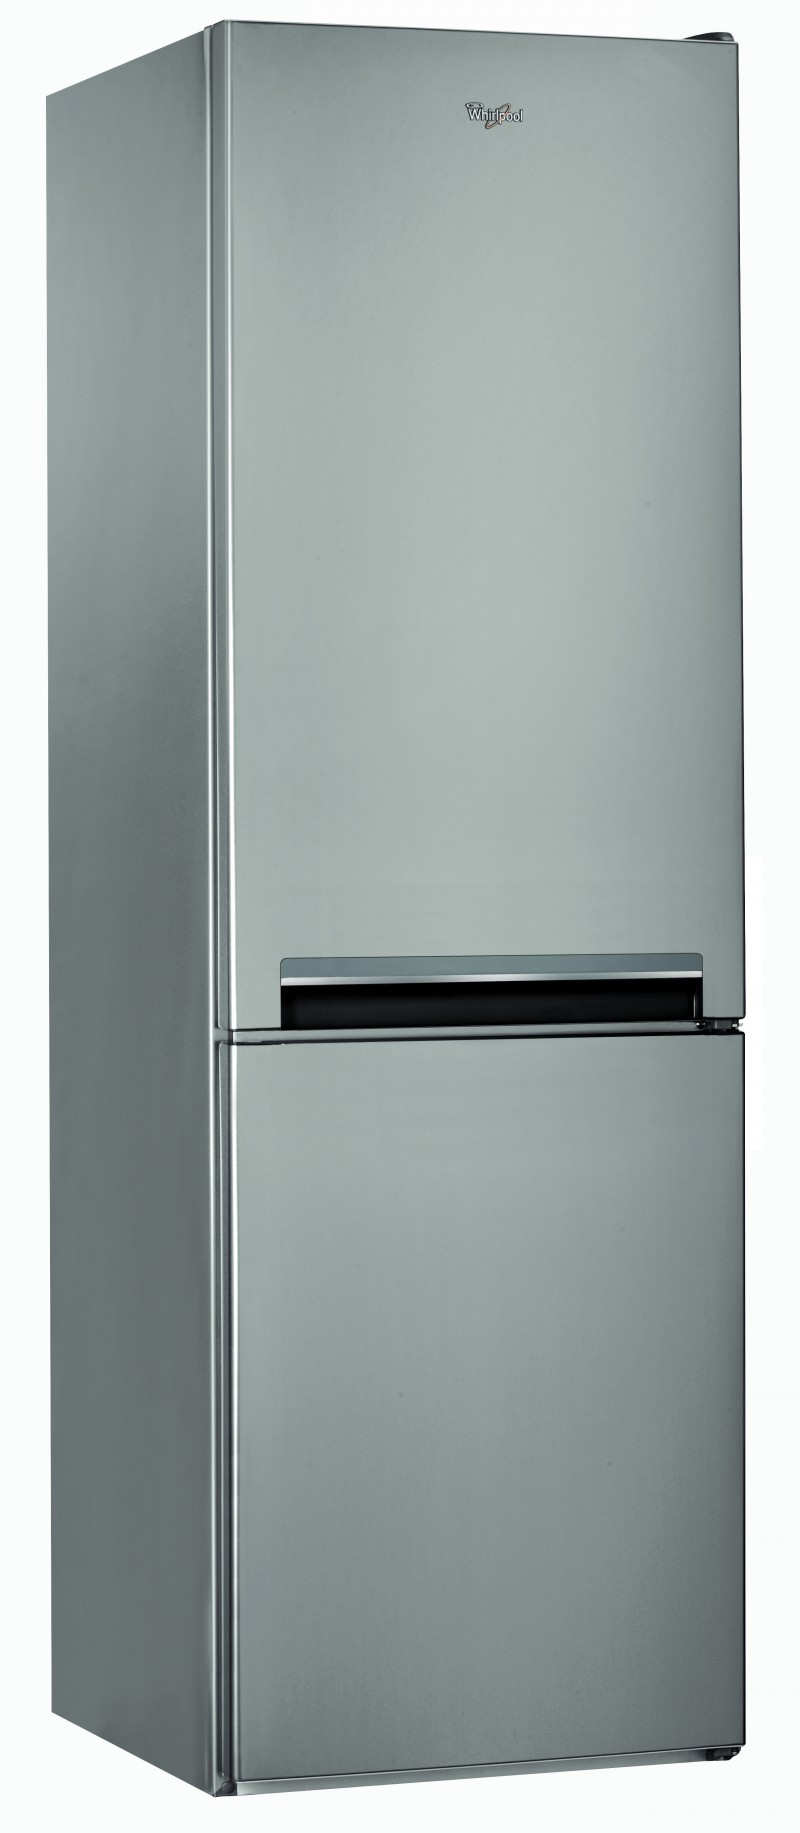 whirlpool 319l combi fridge whirlpool. Black Bedroom Furniture Sets. Home Design Ideas